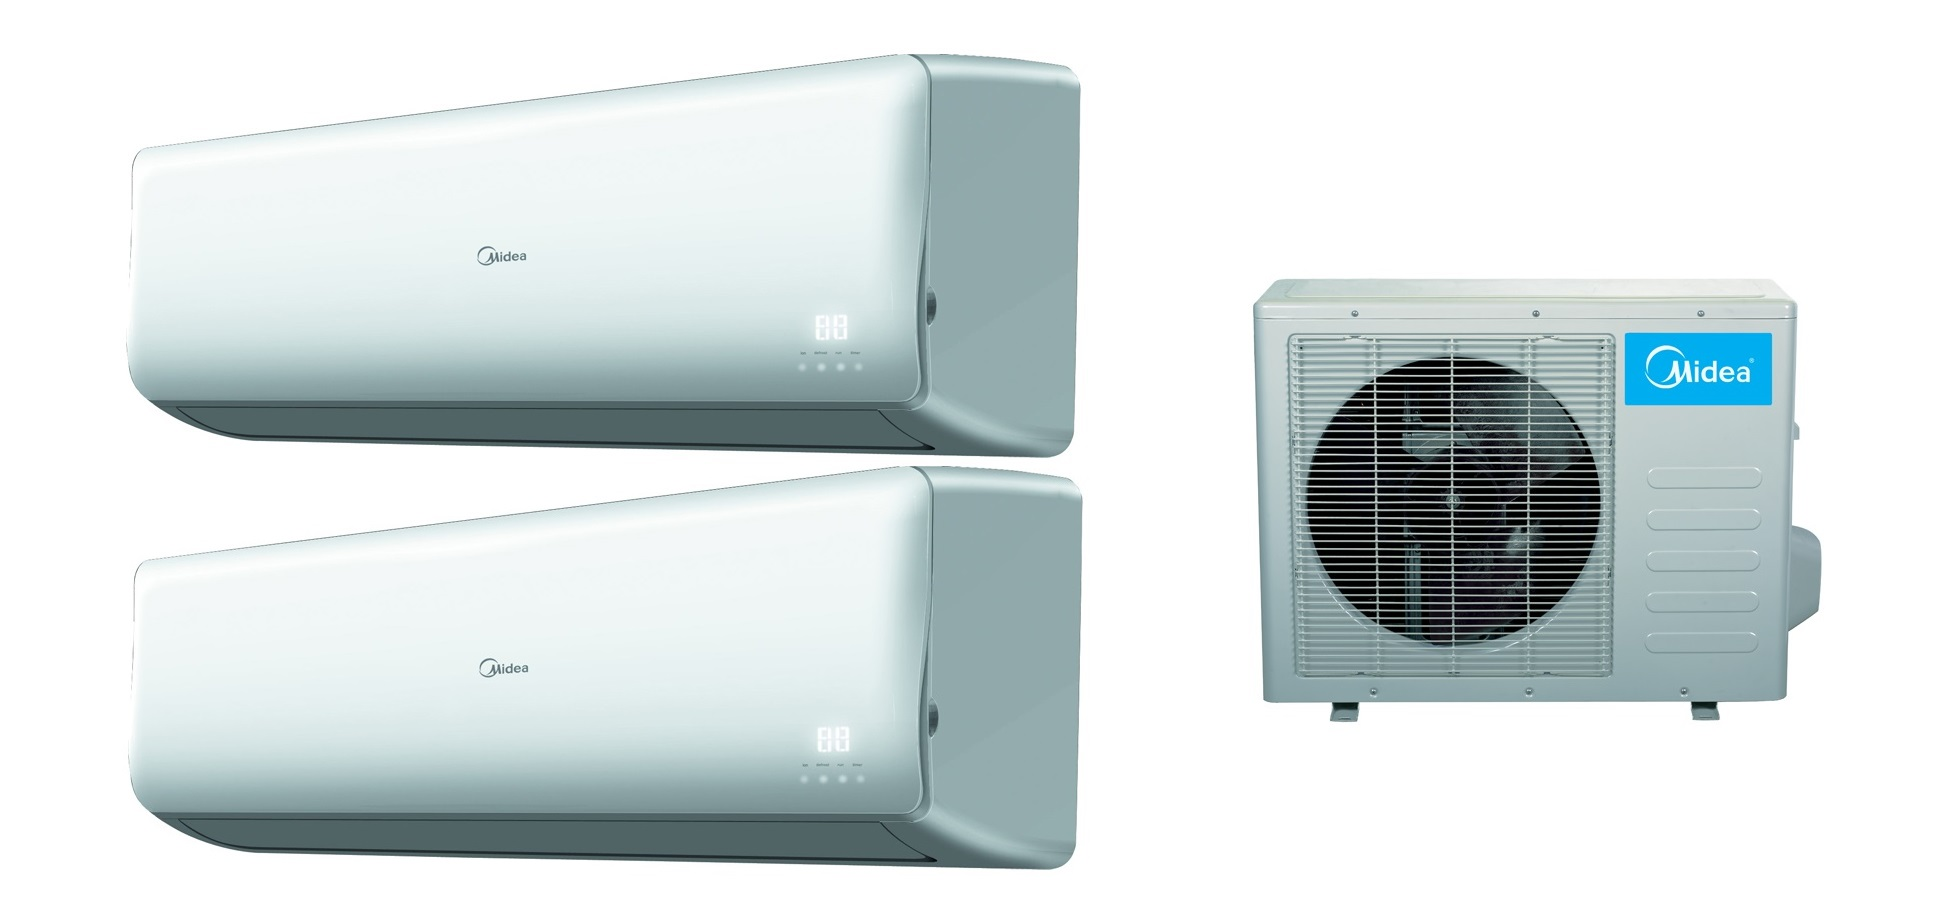 2x18000 Btu 16 Seer Multi Zone Mini Split Heat Pump Air Conditioner #0090CC